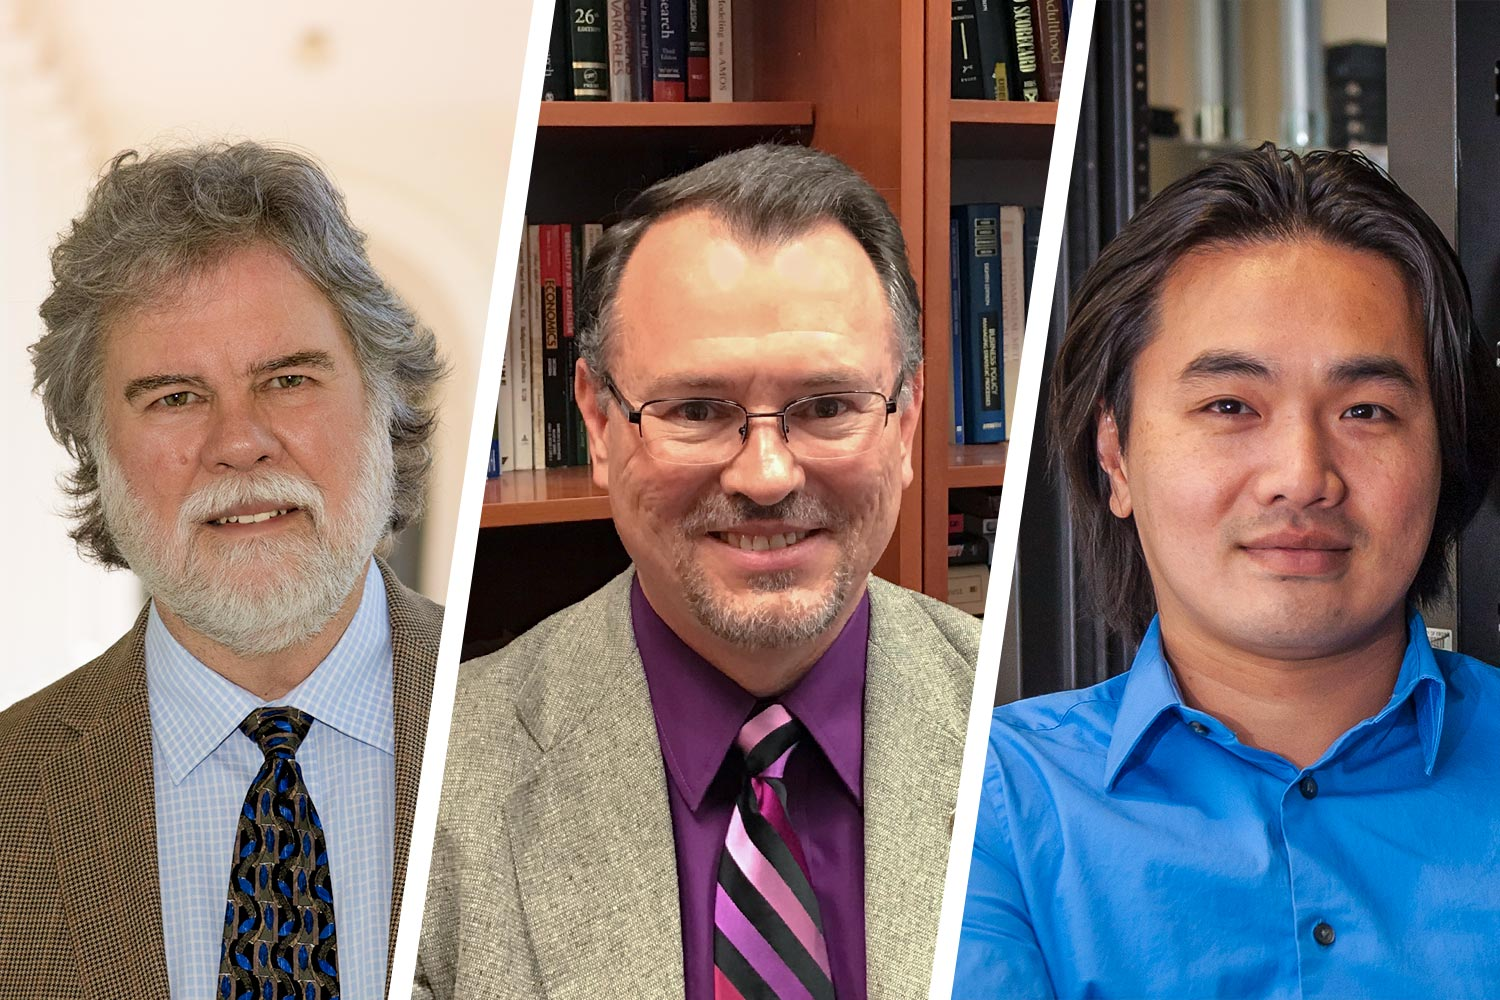 From left, Ron Hutchins, Scott Bevins and Tho Nguyen are heading up the ACCORD initiative that securely broadens researchers' access to protected data.